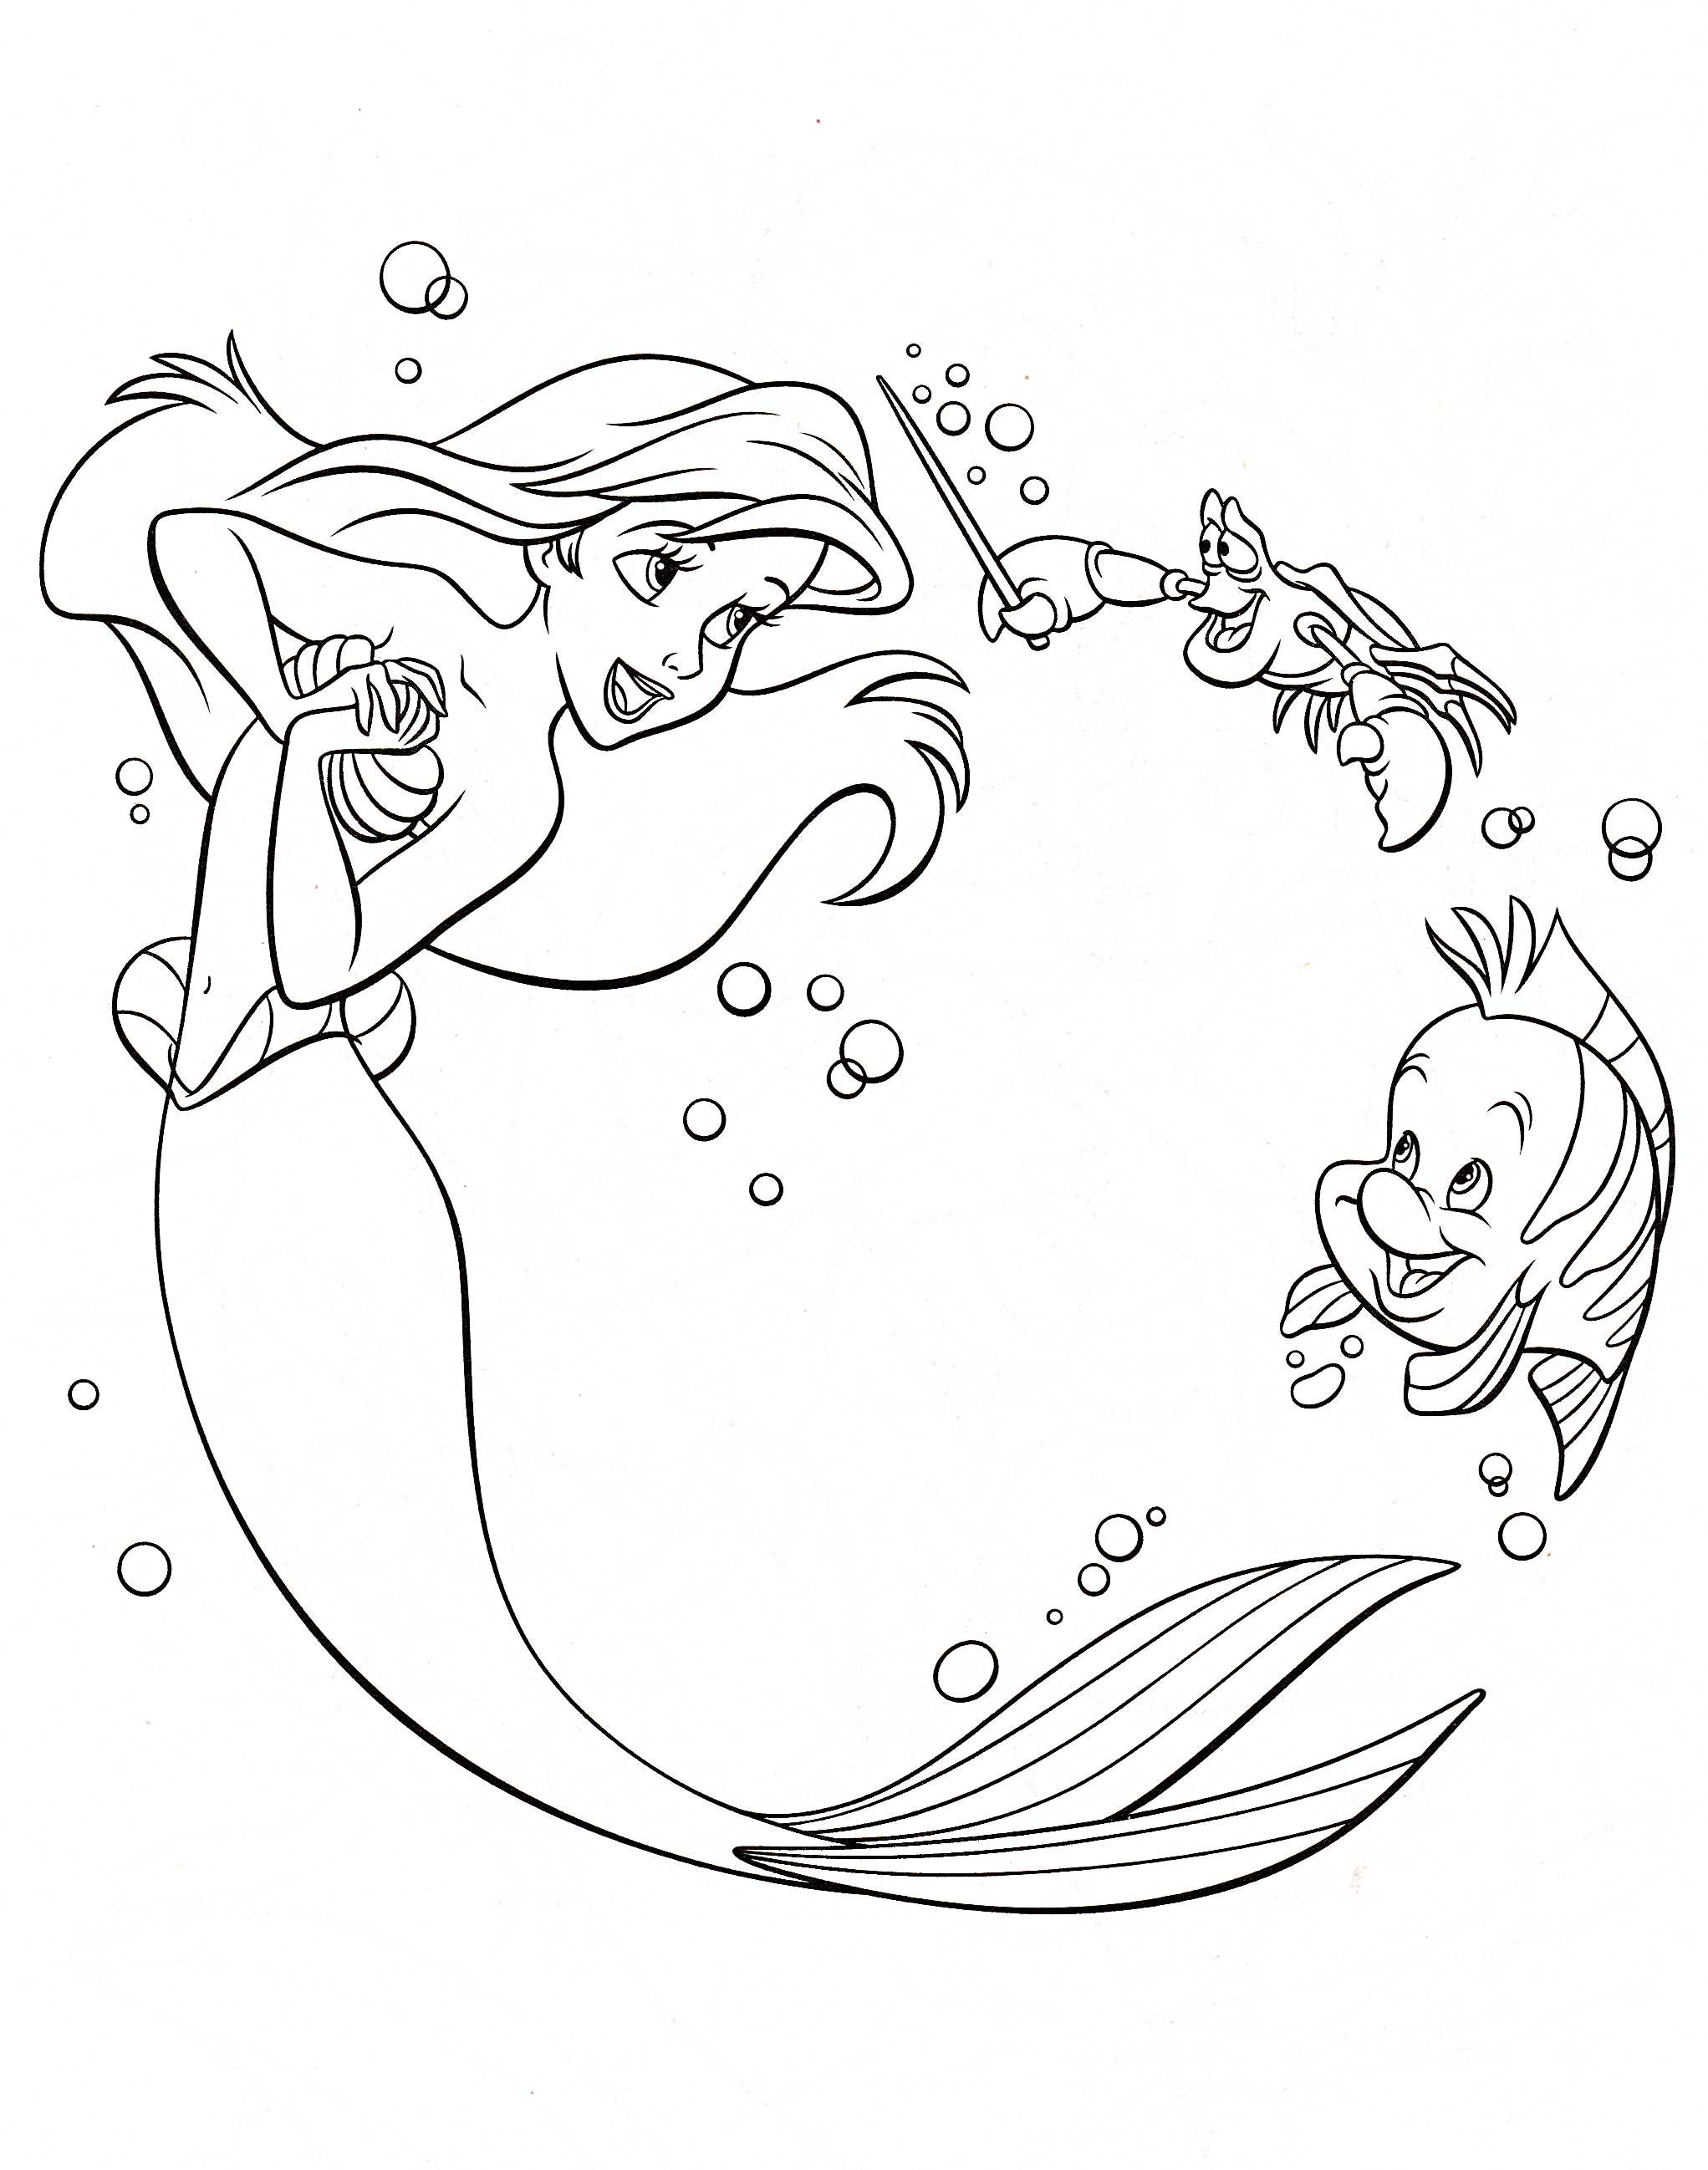 Princess ariel printable coloring pages - a-k-b.info